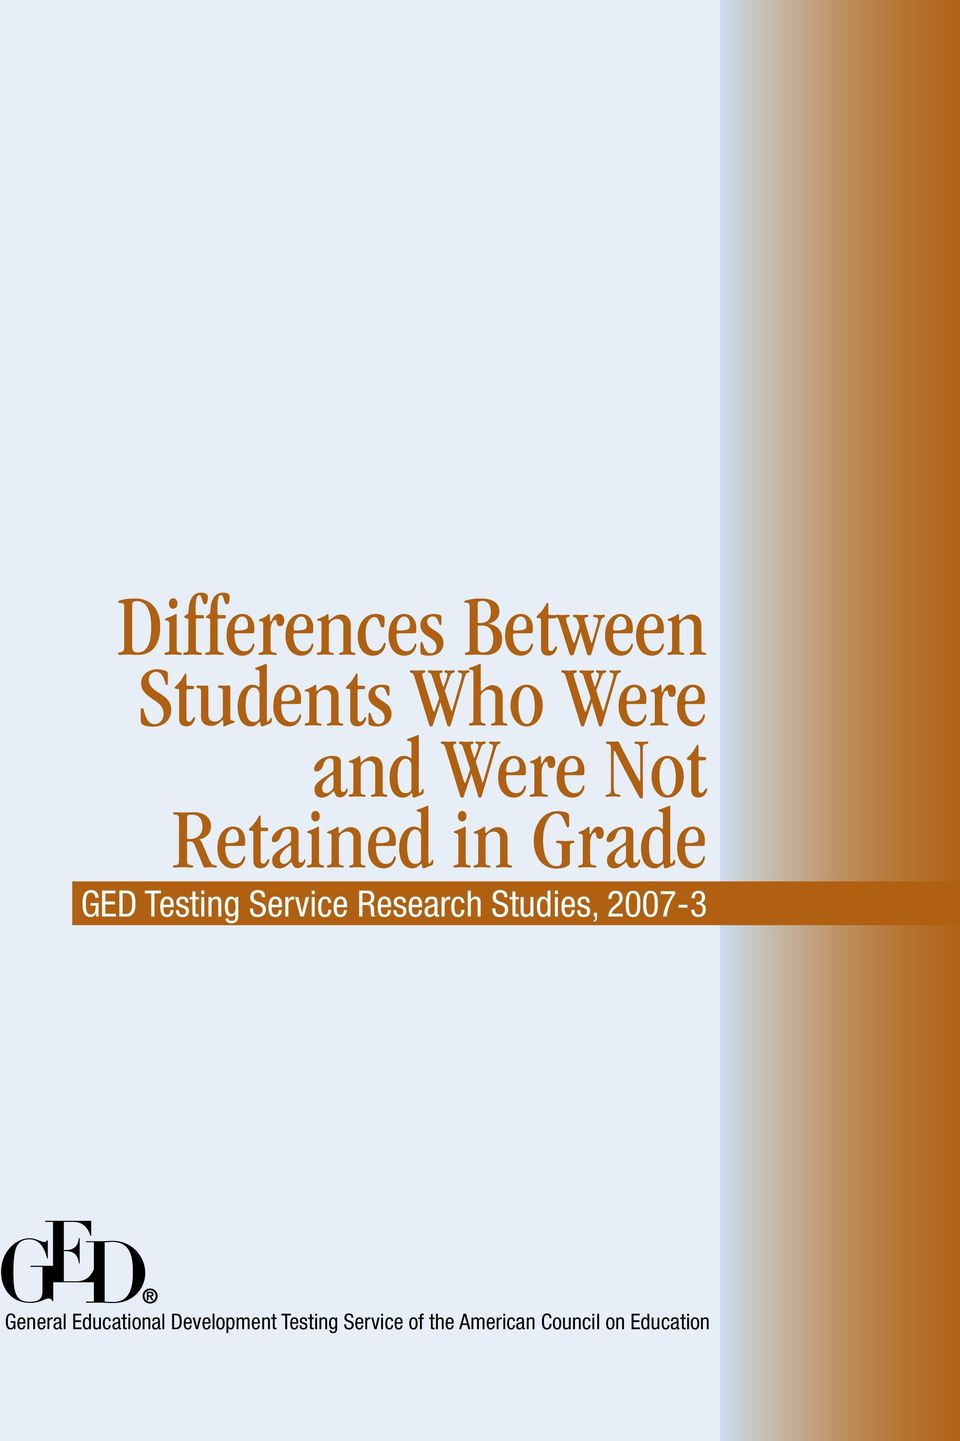 Research Studies, 2007-3 General Educational